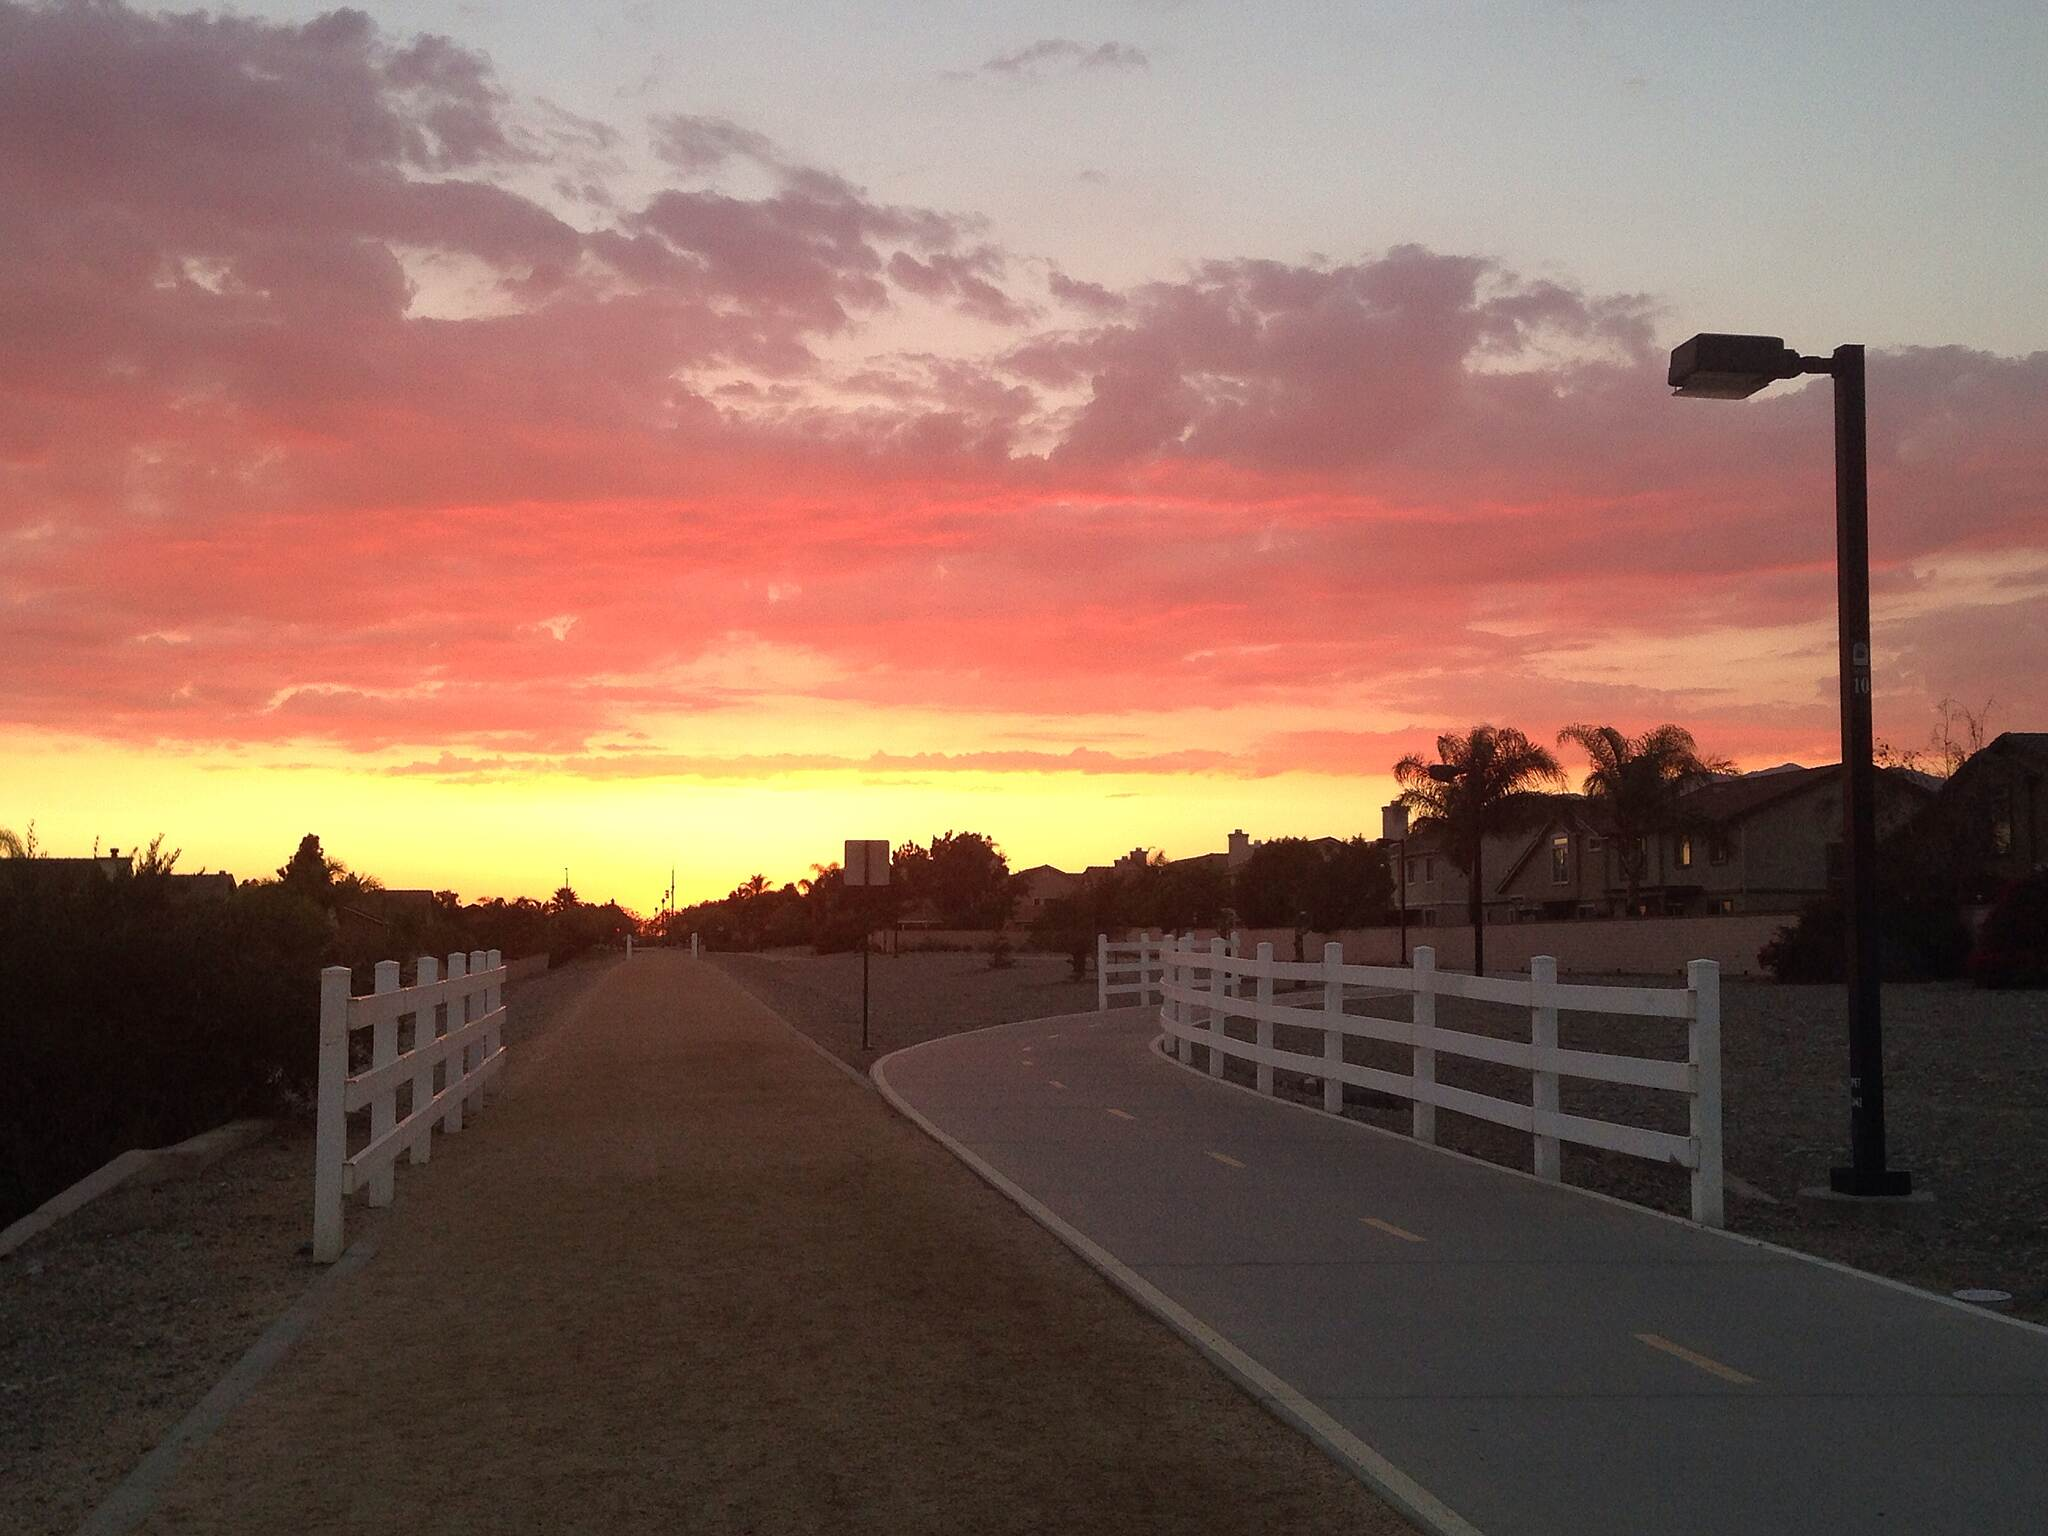 Pacific Electric Inland Empire Trail My evening jog in the sunset It is so beautiful sunset during my jog today.